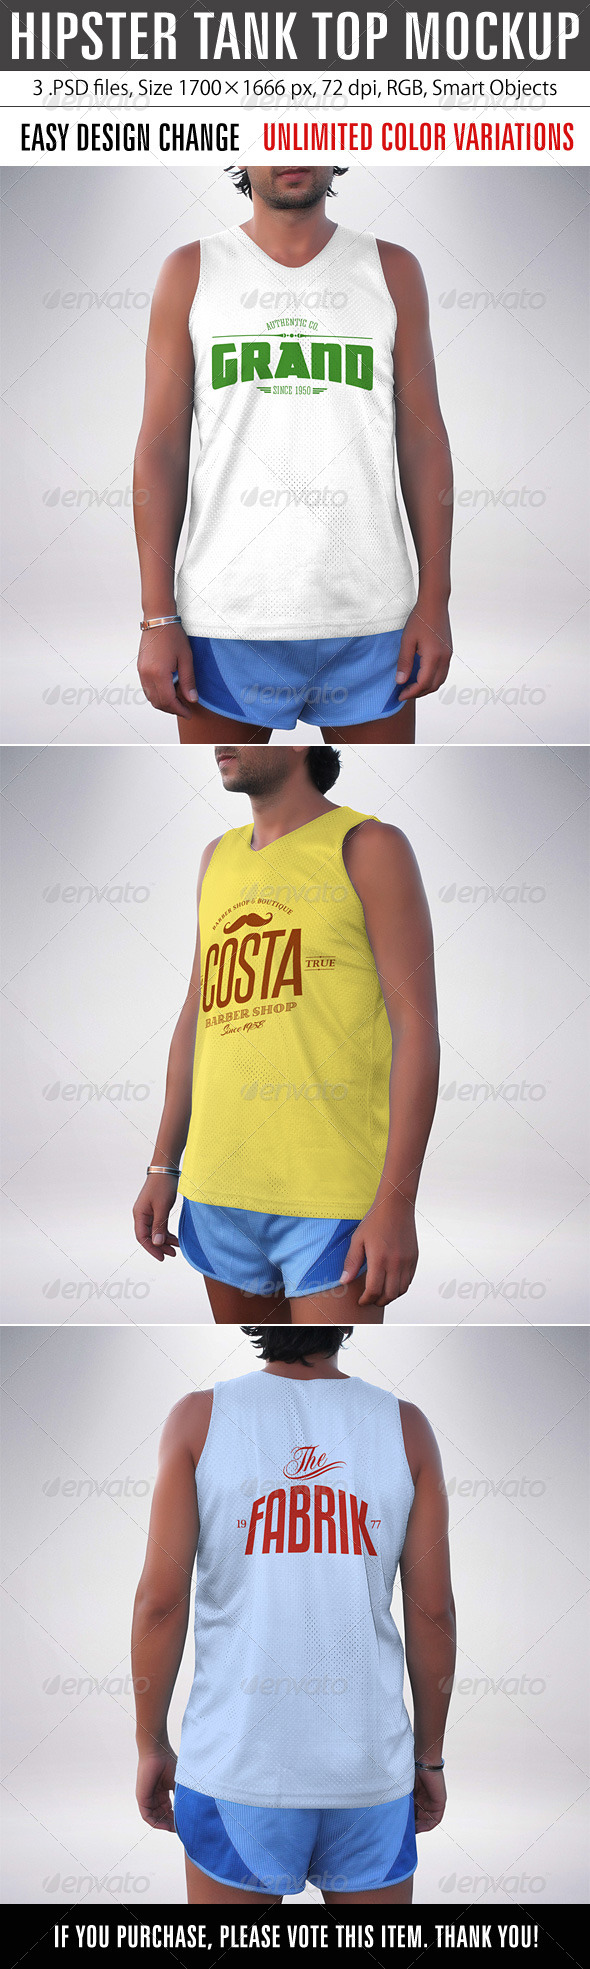 GraphicRiver Hipster Tank Top Mockup 8762044